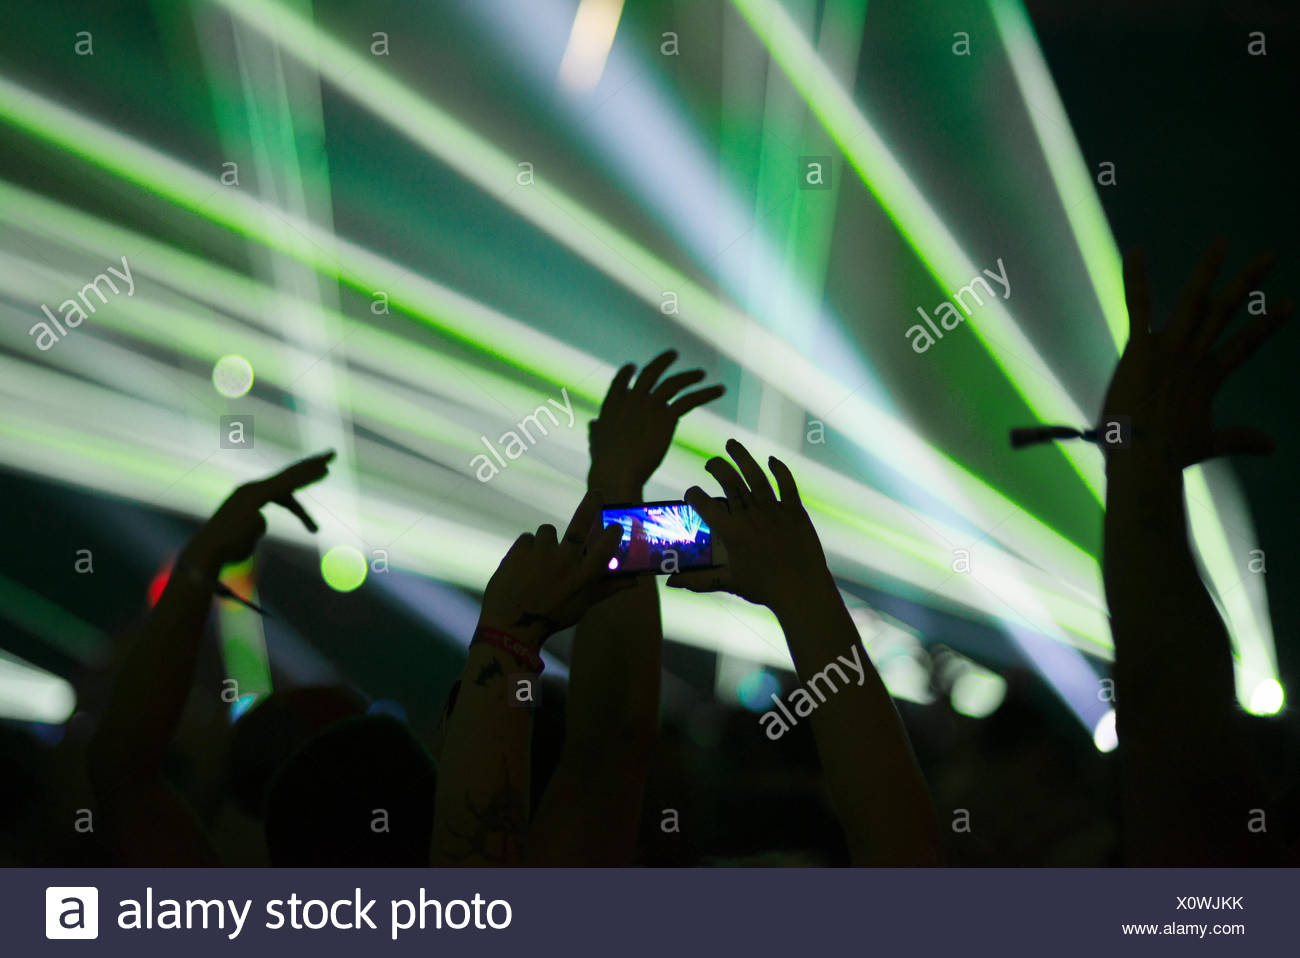 Finland, Uusimaa, Helsinki, Man taking photos with smartphone at Summer Sound Festival - Stock Image